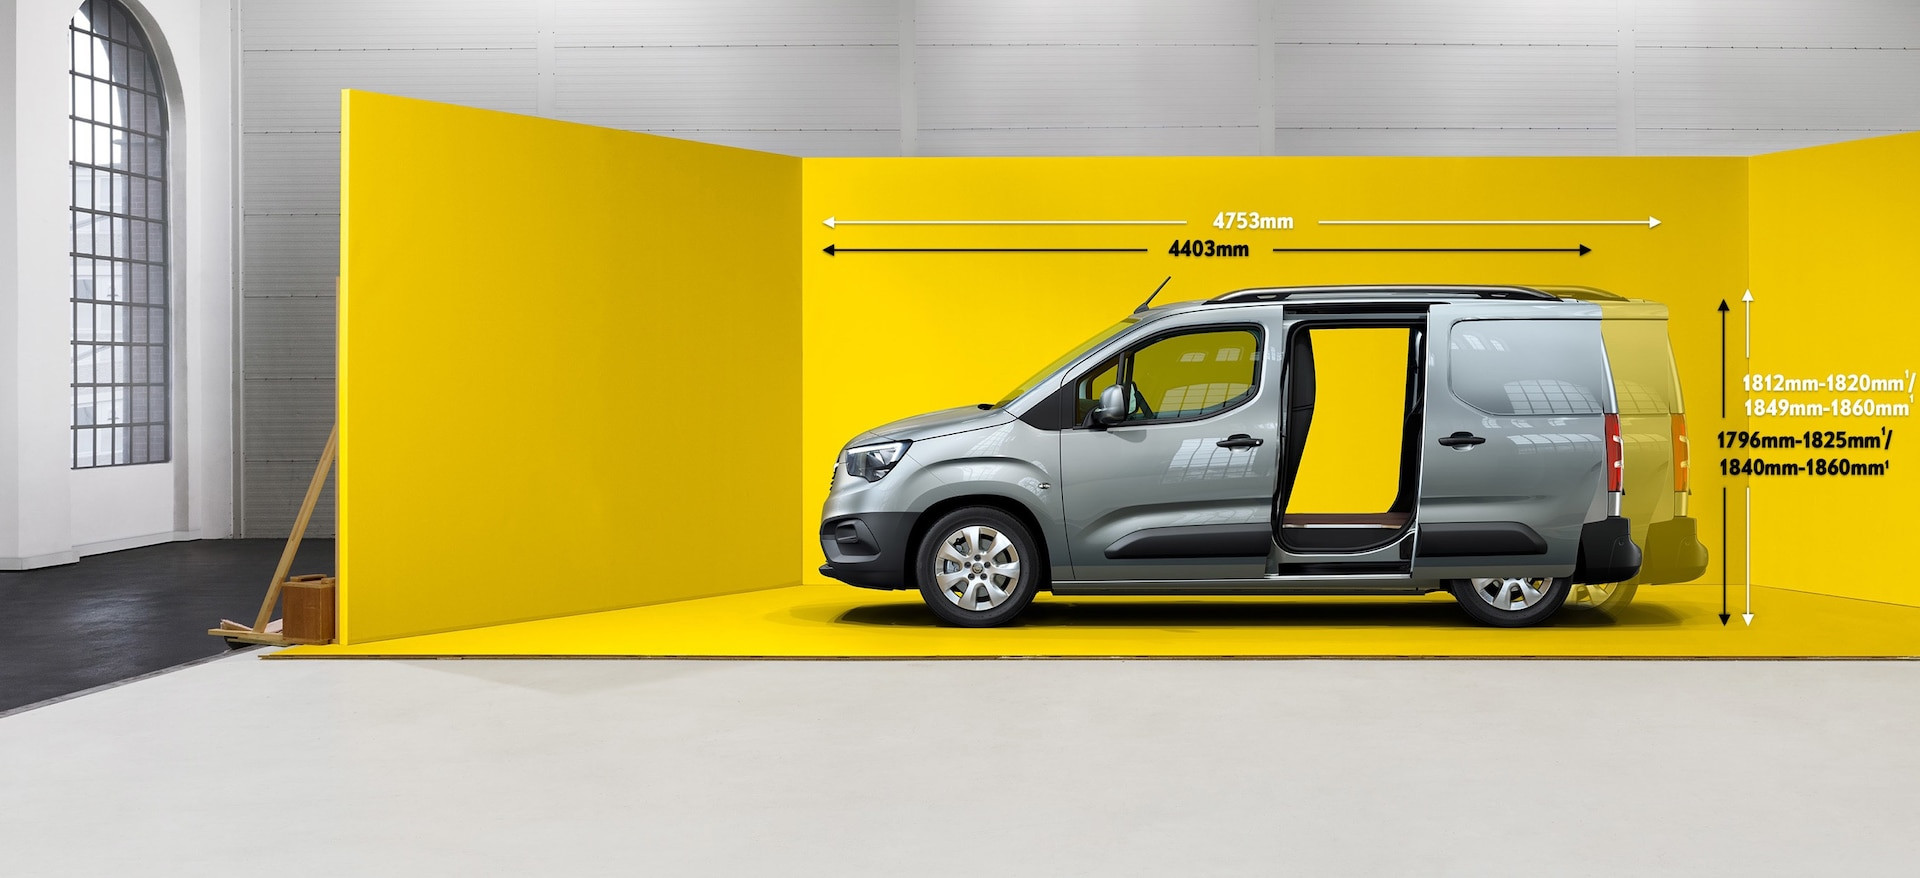 opel_combo_cargo_measurements_21x9_cmc19